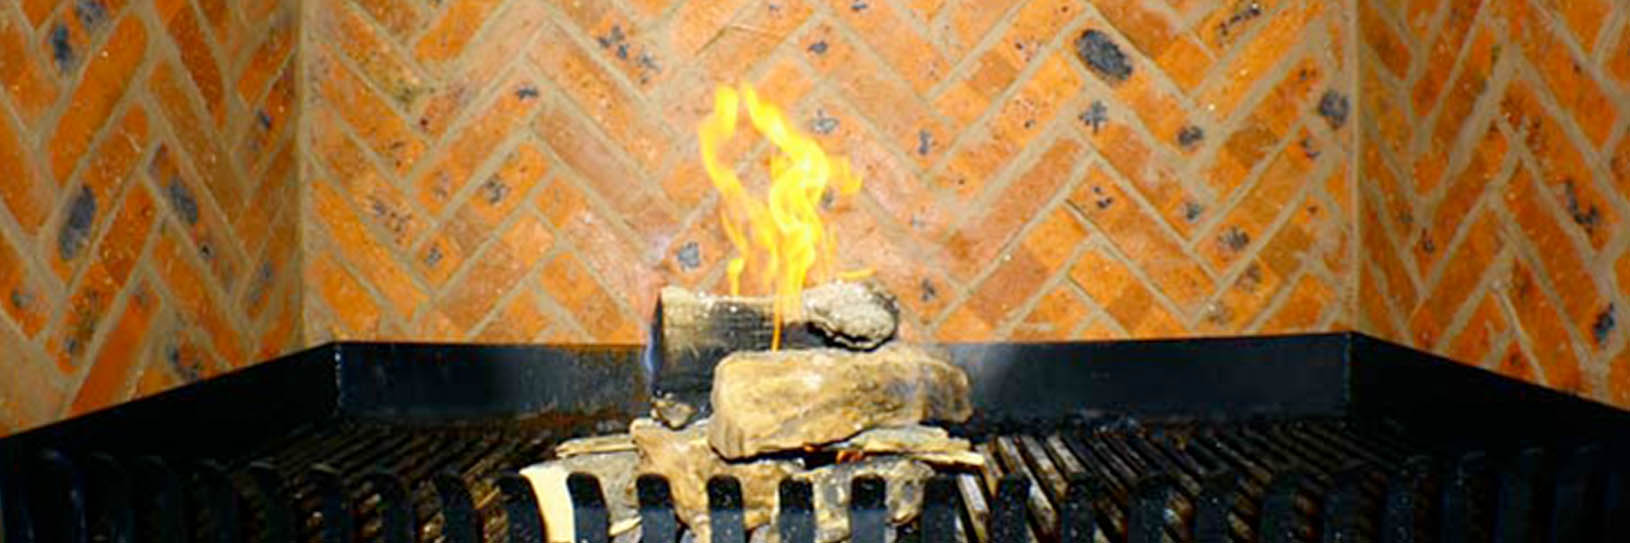 https://www.vanbrosconstruction.co.za/portfolio/herringbone-brick-fireplace/